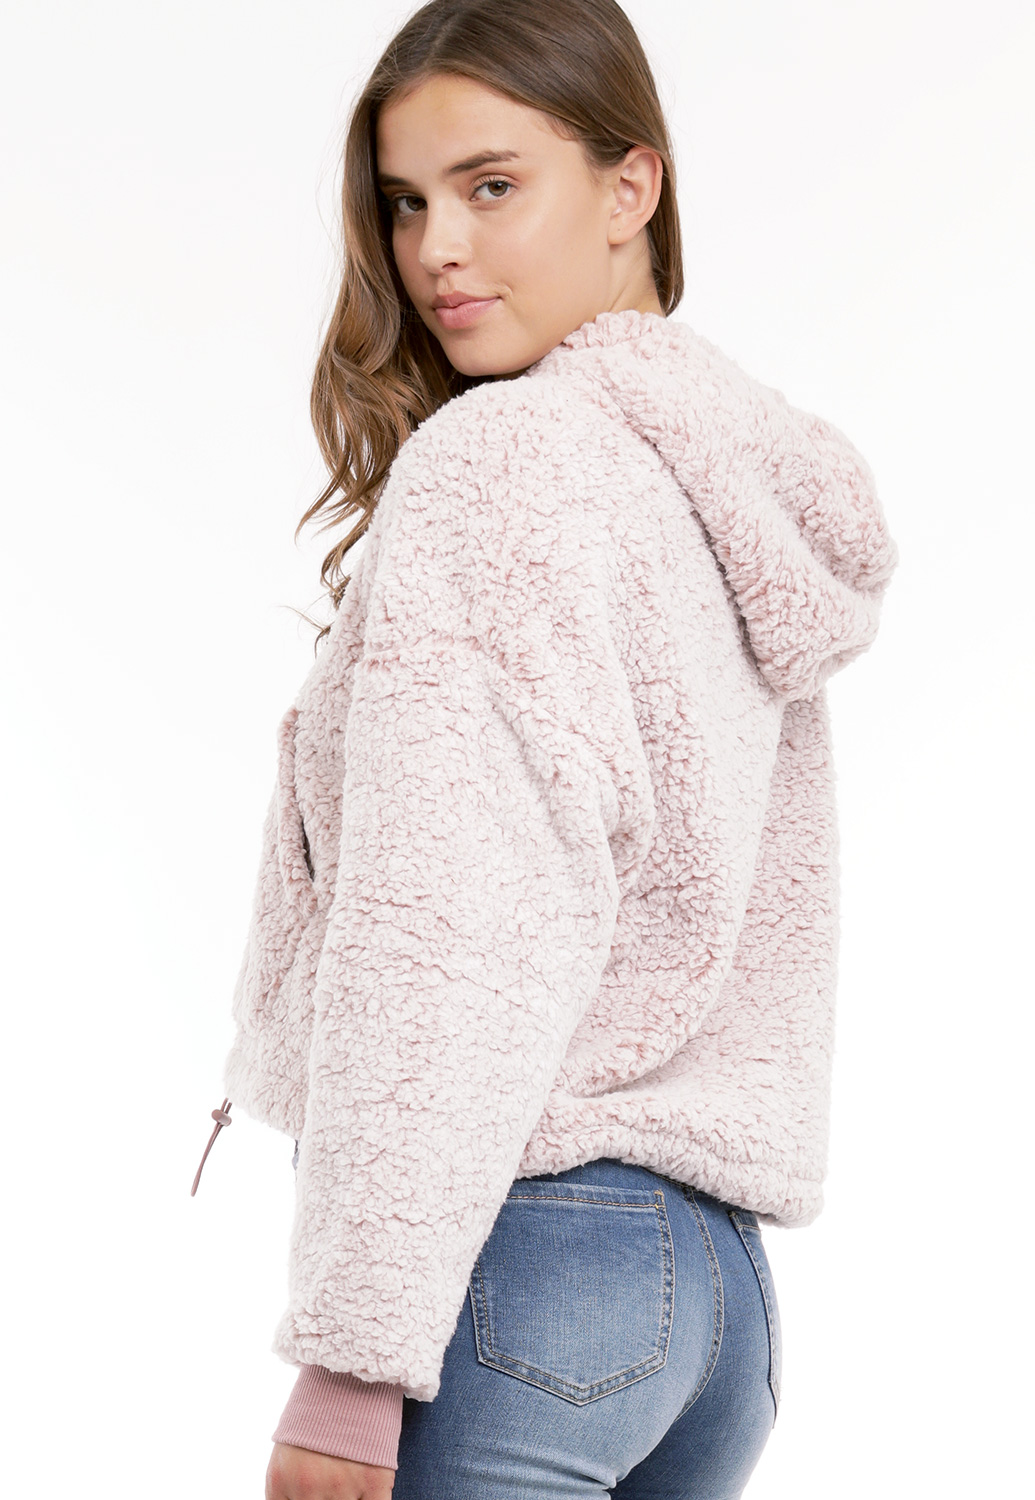 Half Zip Up Faux Shearling Sweater